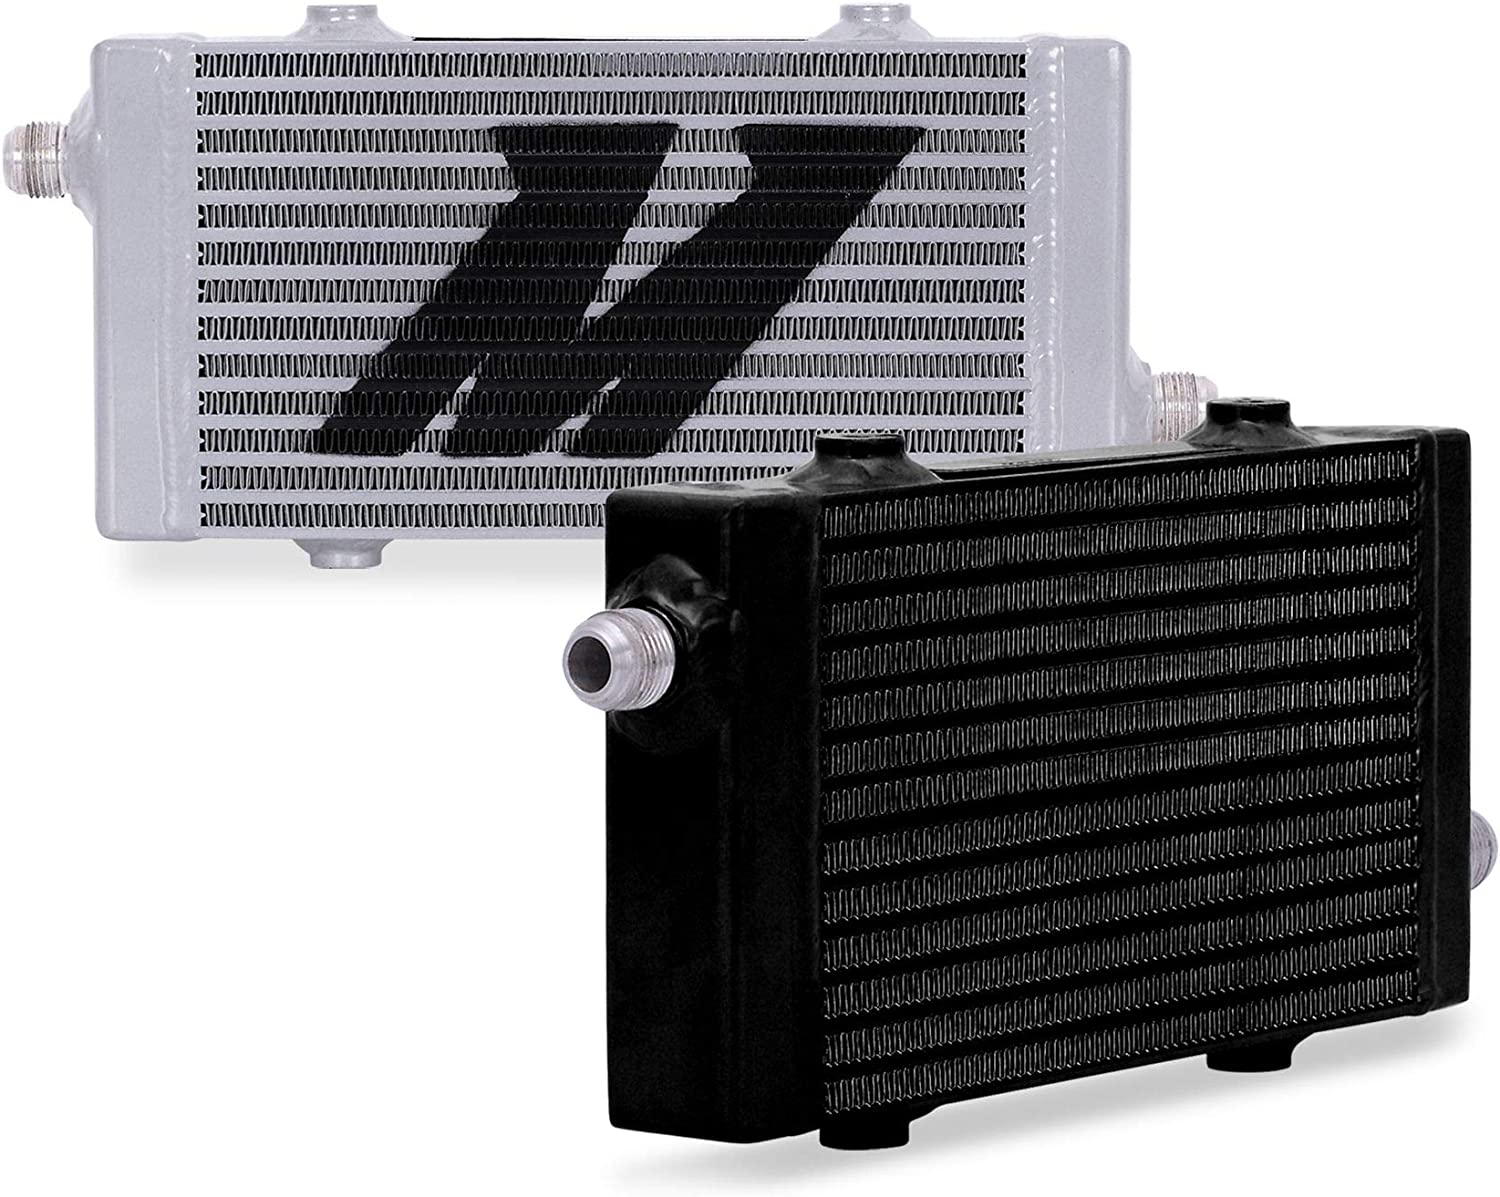 Blue Mishimoto MMOC-19BL Universal 19 Row Oil Cooler